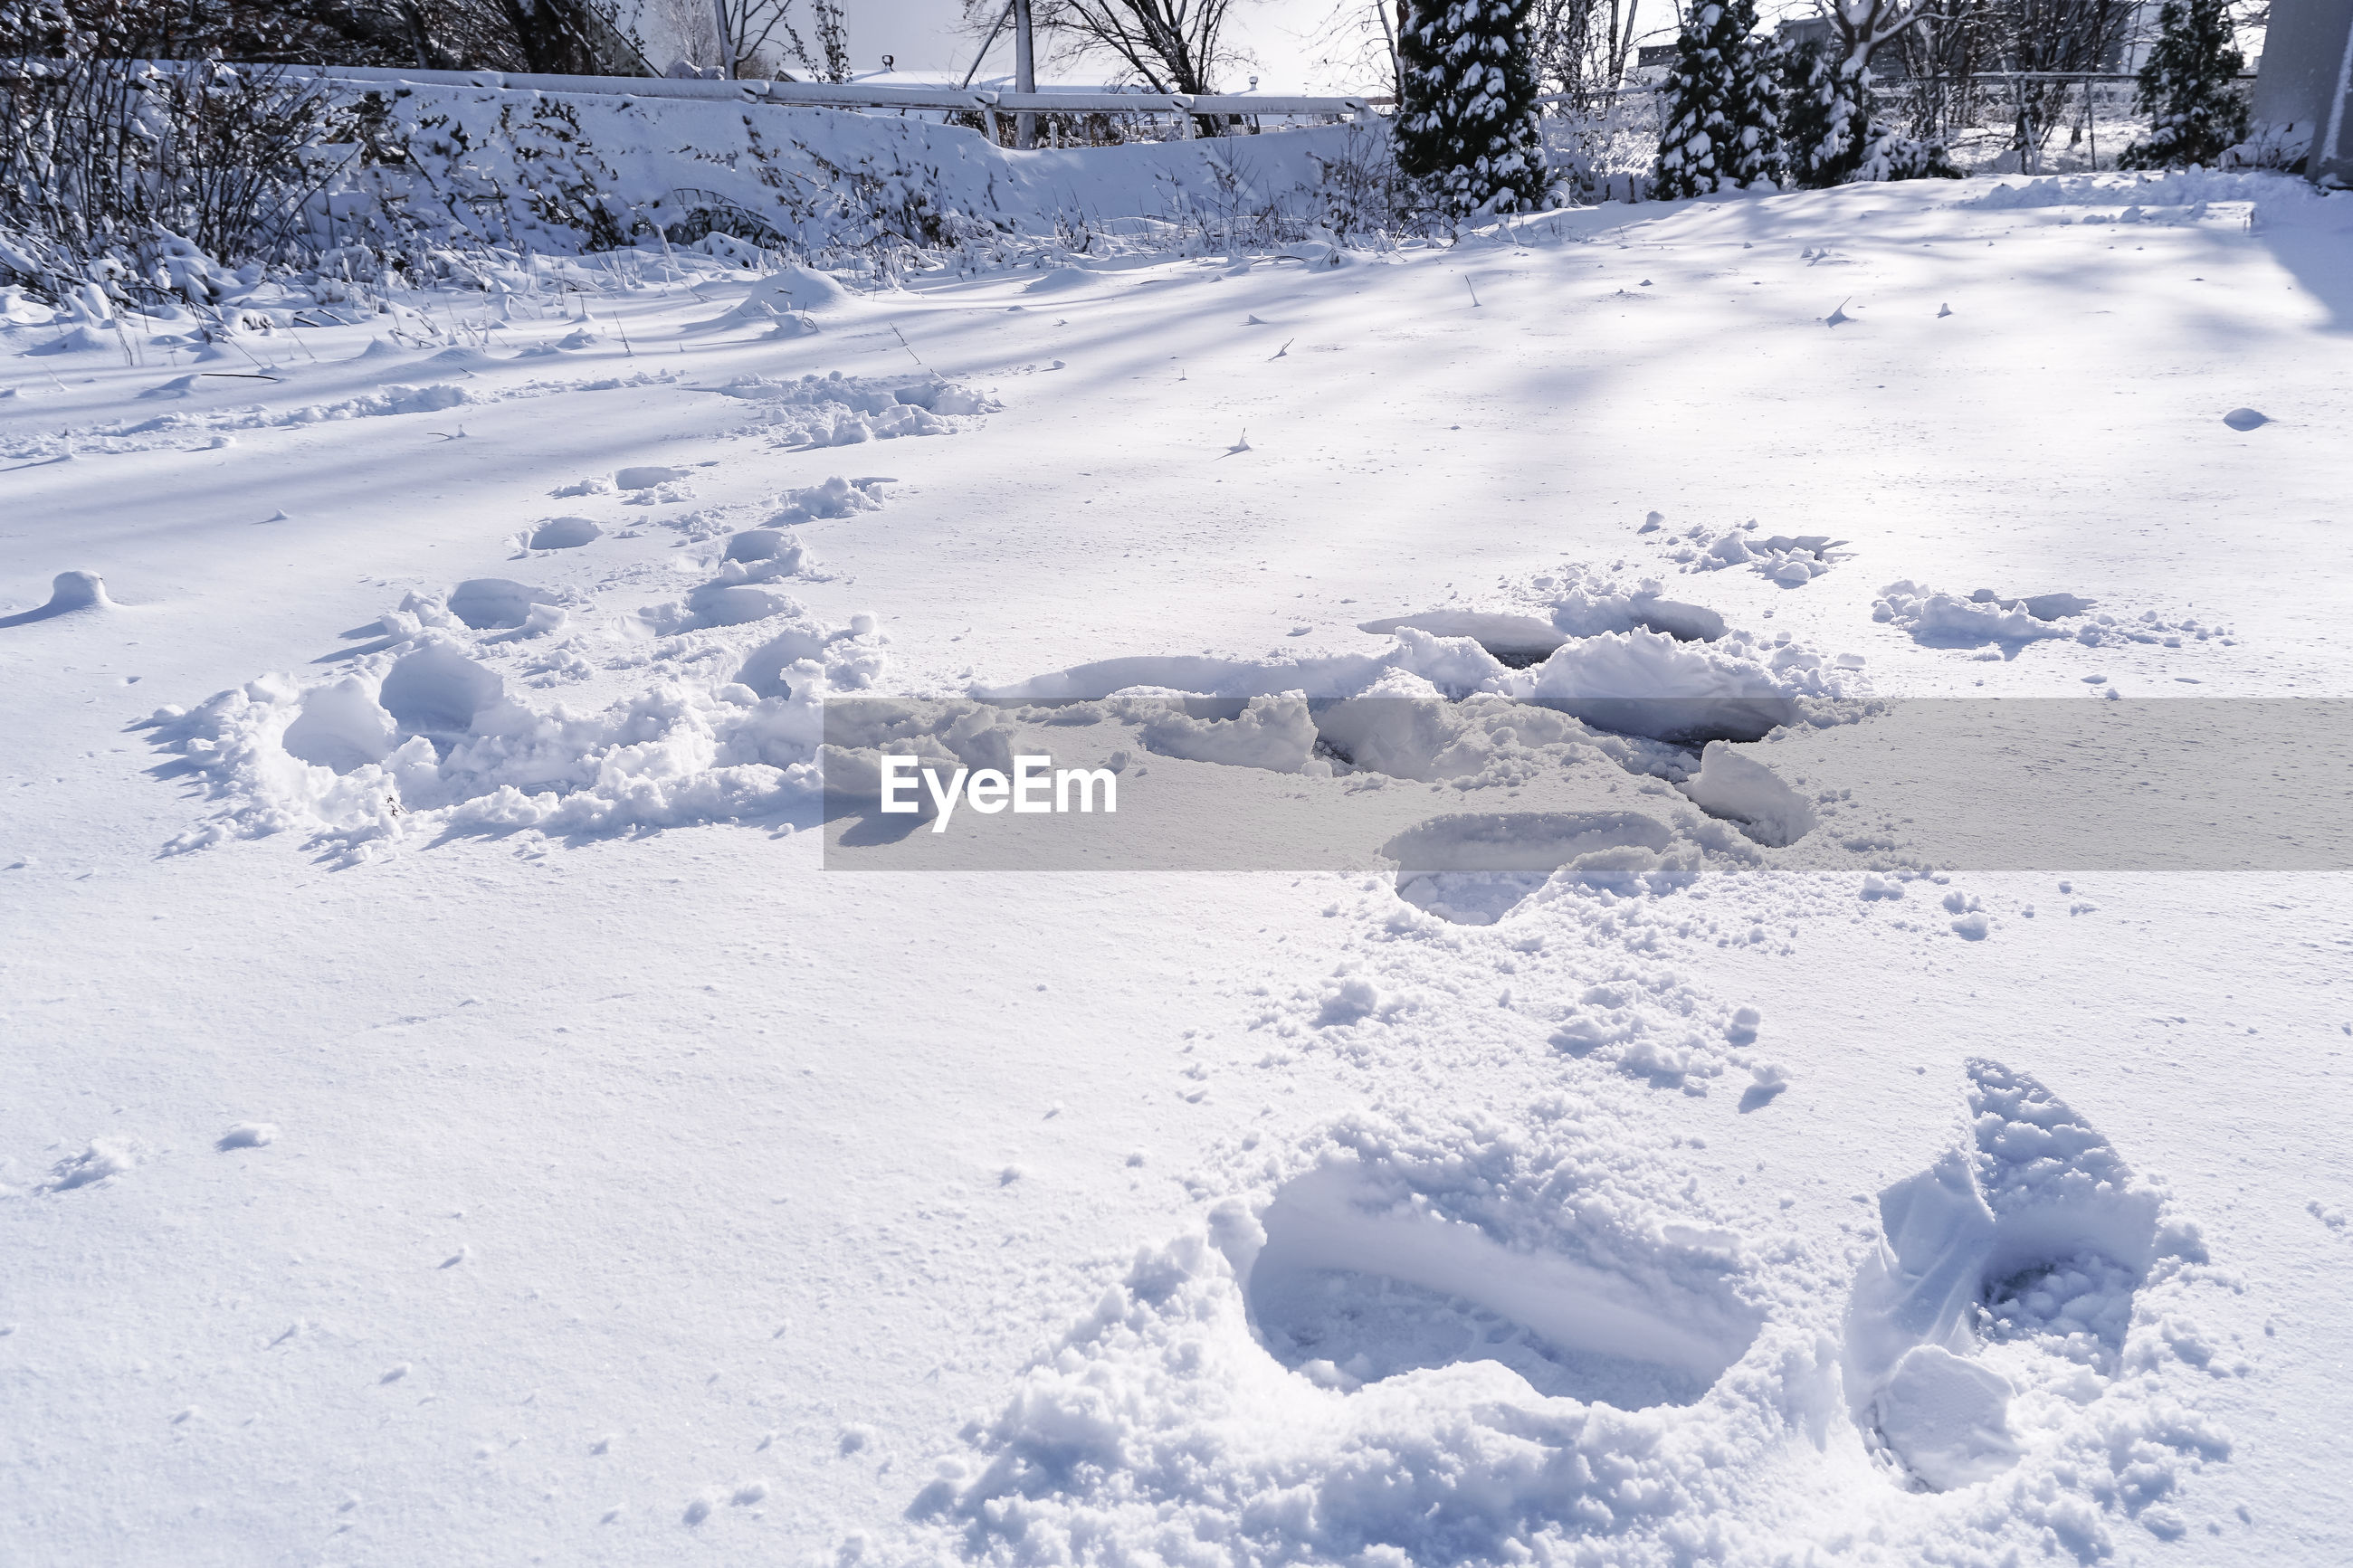 VIEW OF SNOW COVERED FIELD